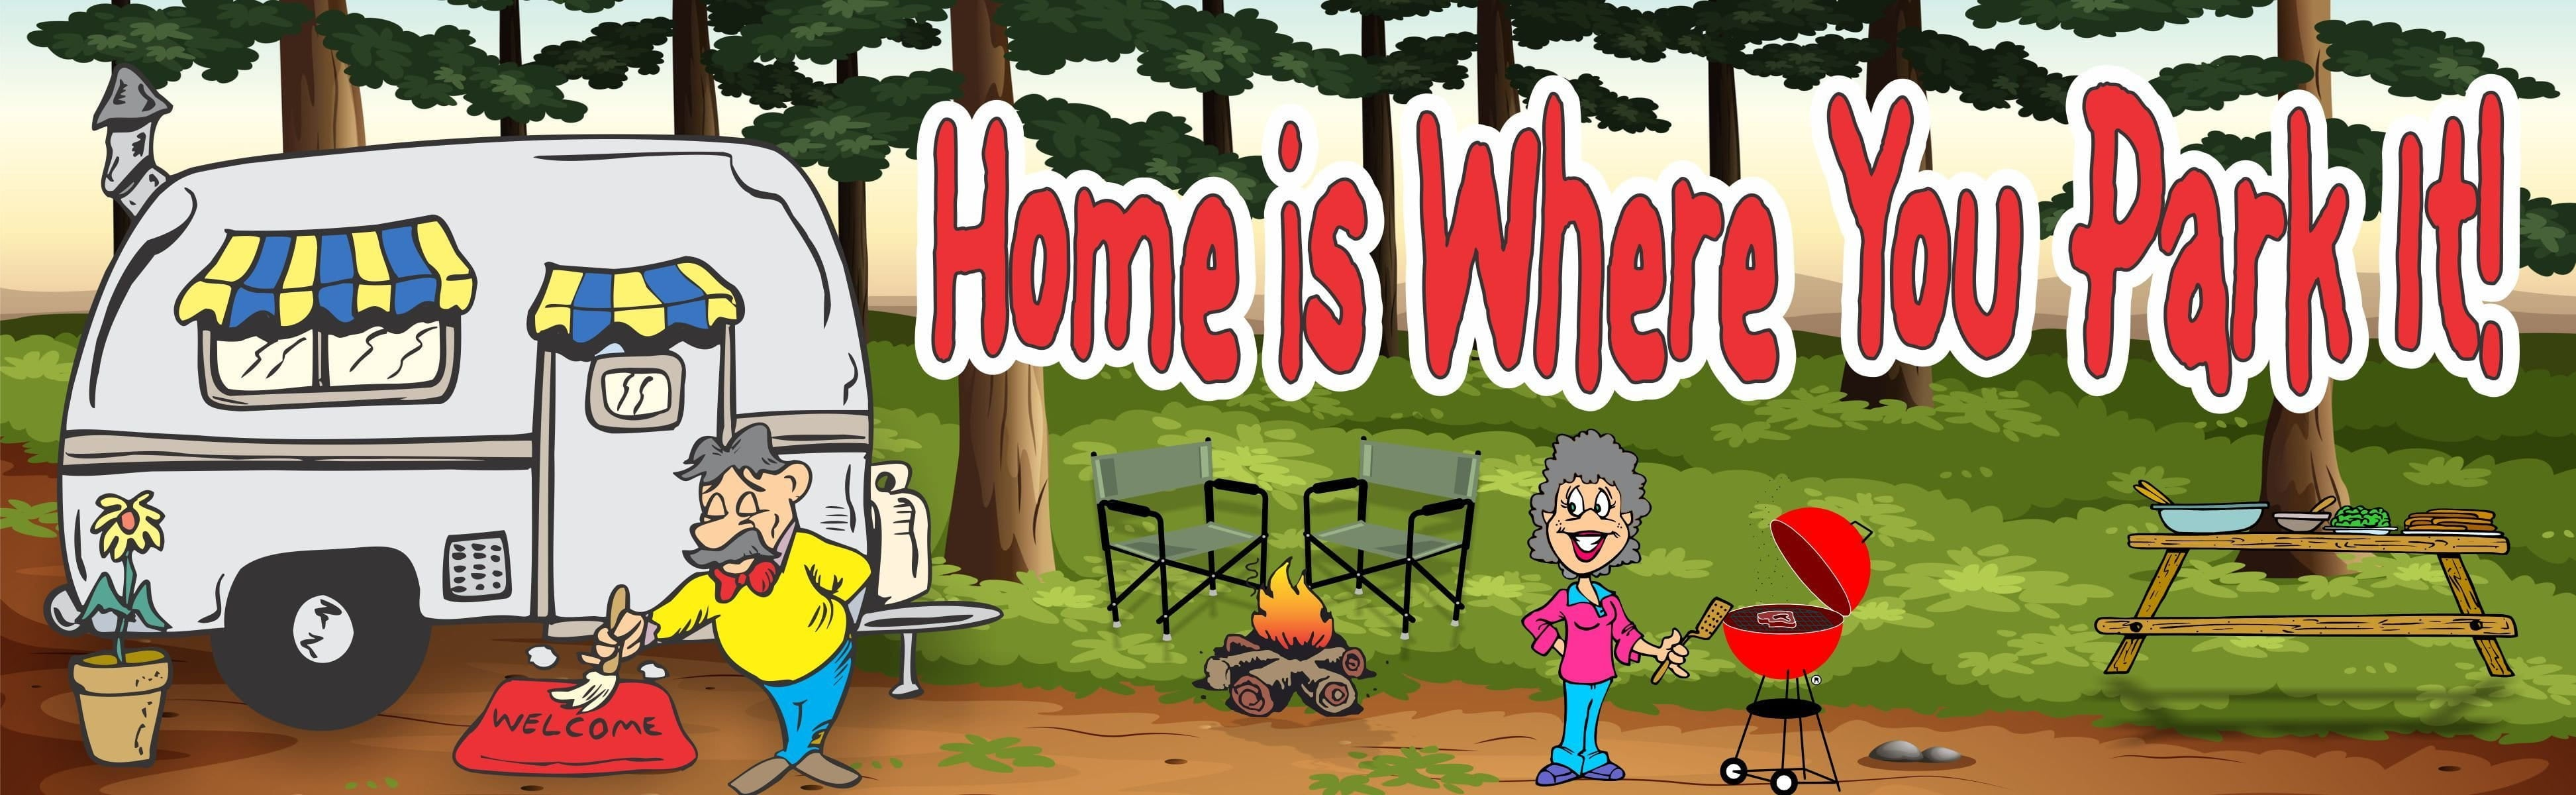 Home Is Where You Park It RV Camping Sign With Couple BBQ